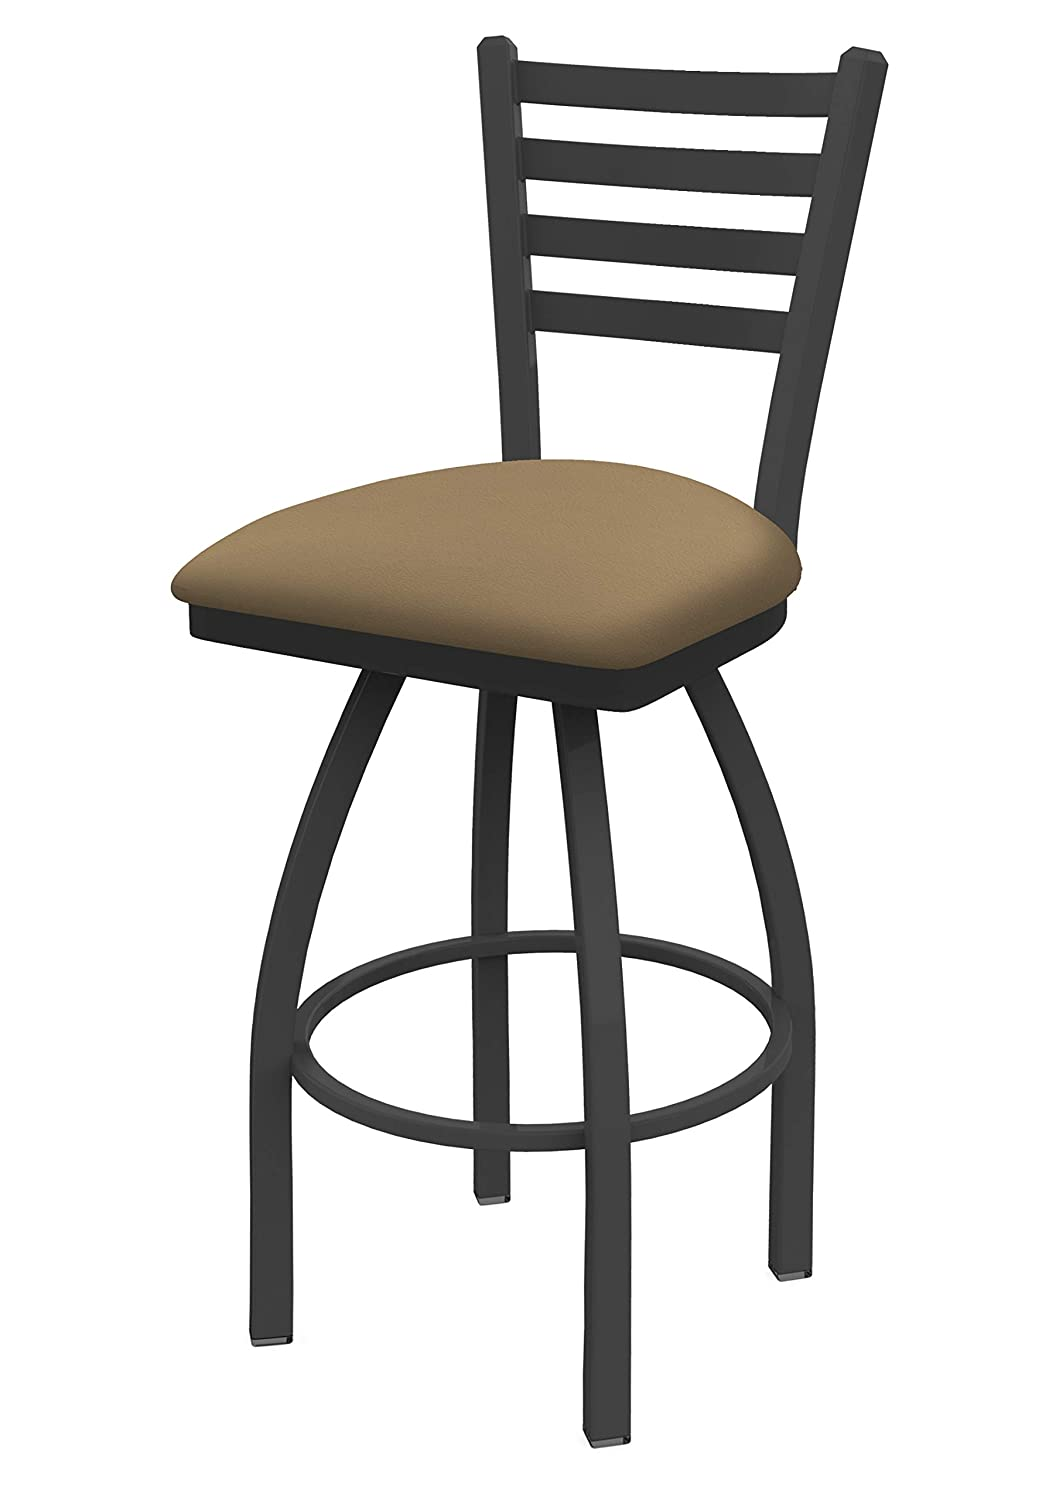 Fantastic Holland Bar Stool Co 41036Pw013 410 Jackie Swivel Bar Stool 36 Seat Height Canter Sand Machost Co Dining Chair Design Ideas Machostcouk